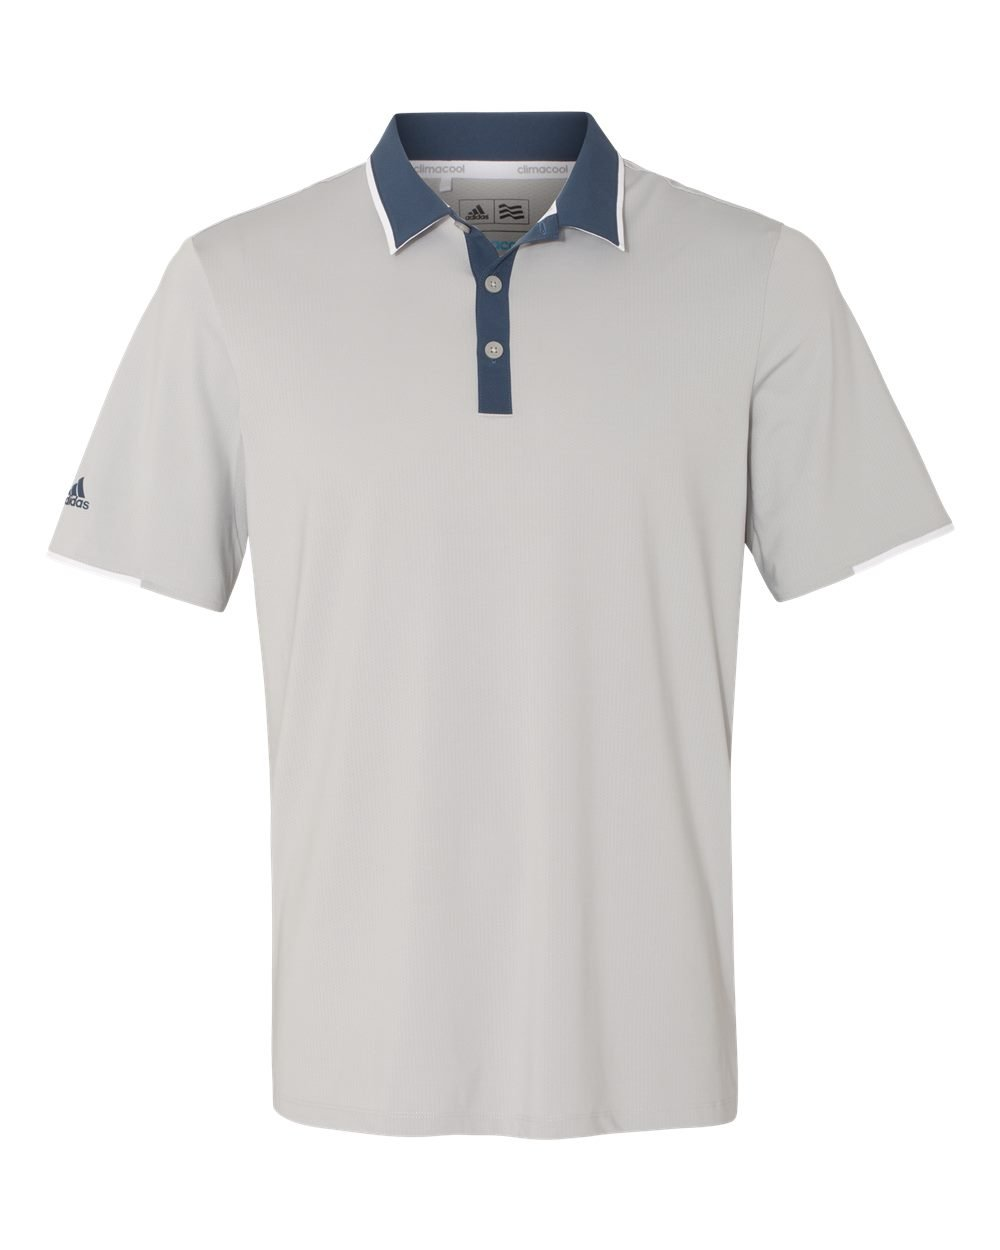 adidas Golf Mens Climacool Performance Polo (A166) -Stone/Min -3XL